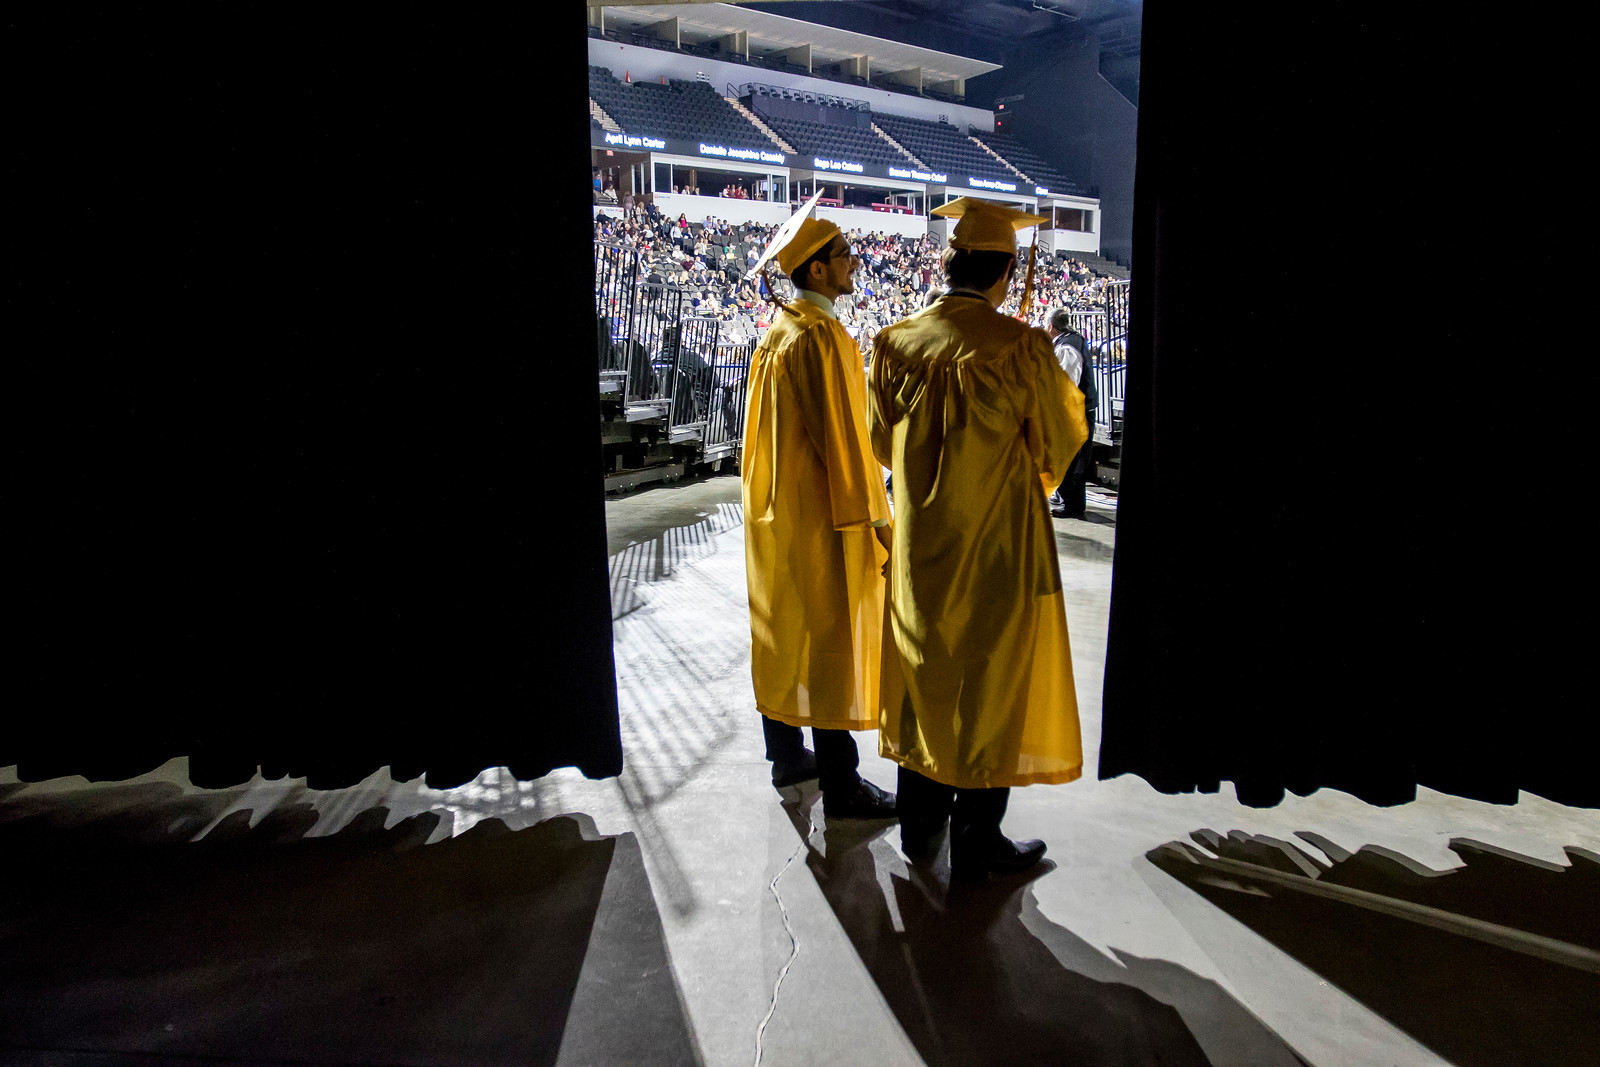 Sarah Nader - snader@shawmedia.com Tamur Baig (left) and Andrew Benson takes a peak at the arena before the Harry D. Jacobs High School 2017 Commencement at the Sears Center Arena in Hoffman Estates Saturday, May 20, 2017.